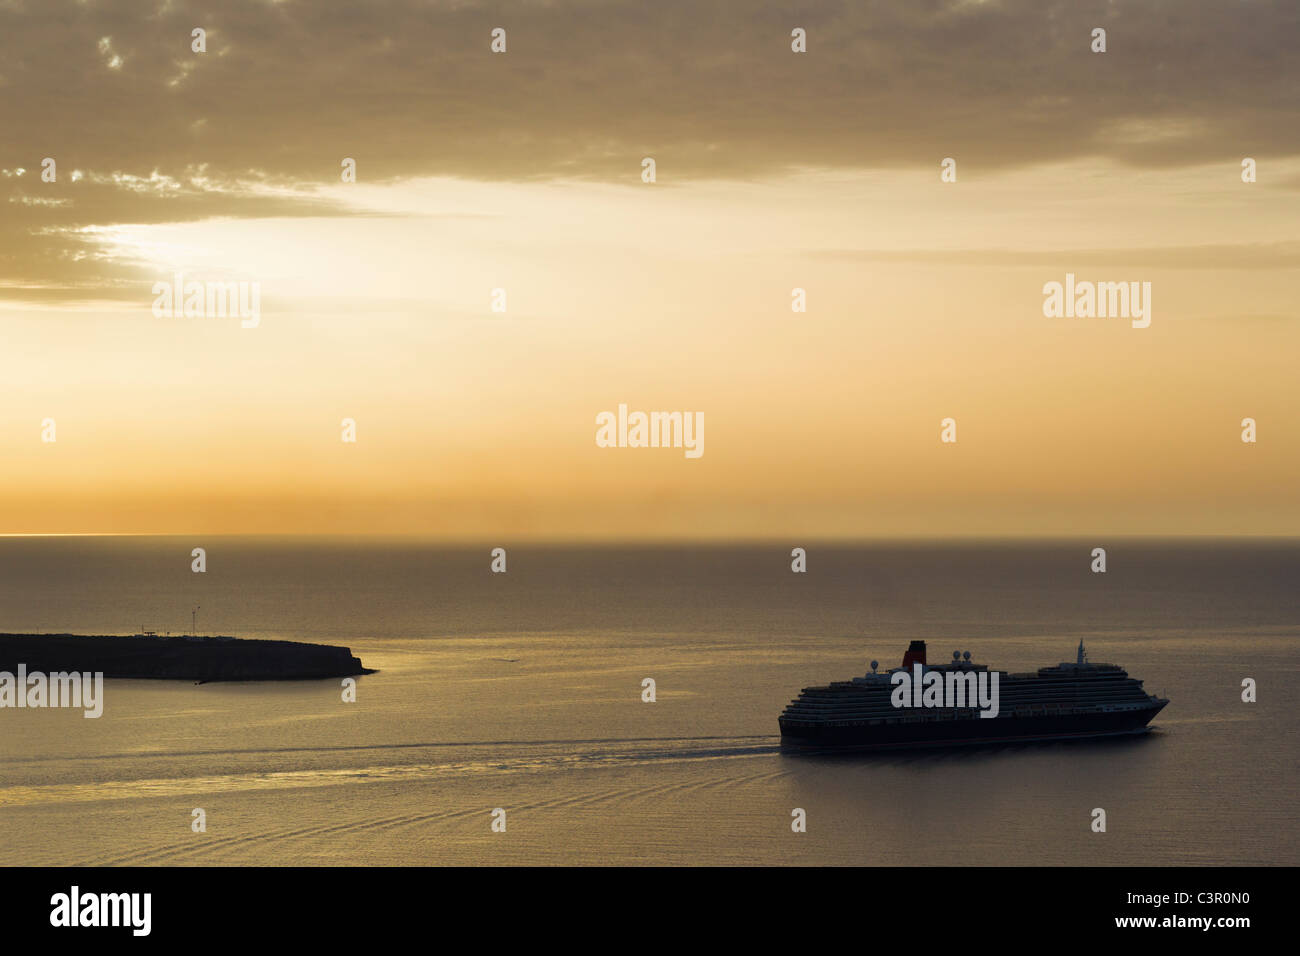 Europe, Greece, Thira, Cyclades, Santorini, View of cruise liner in aegean sea at sunset - Stock Image